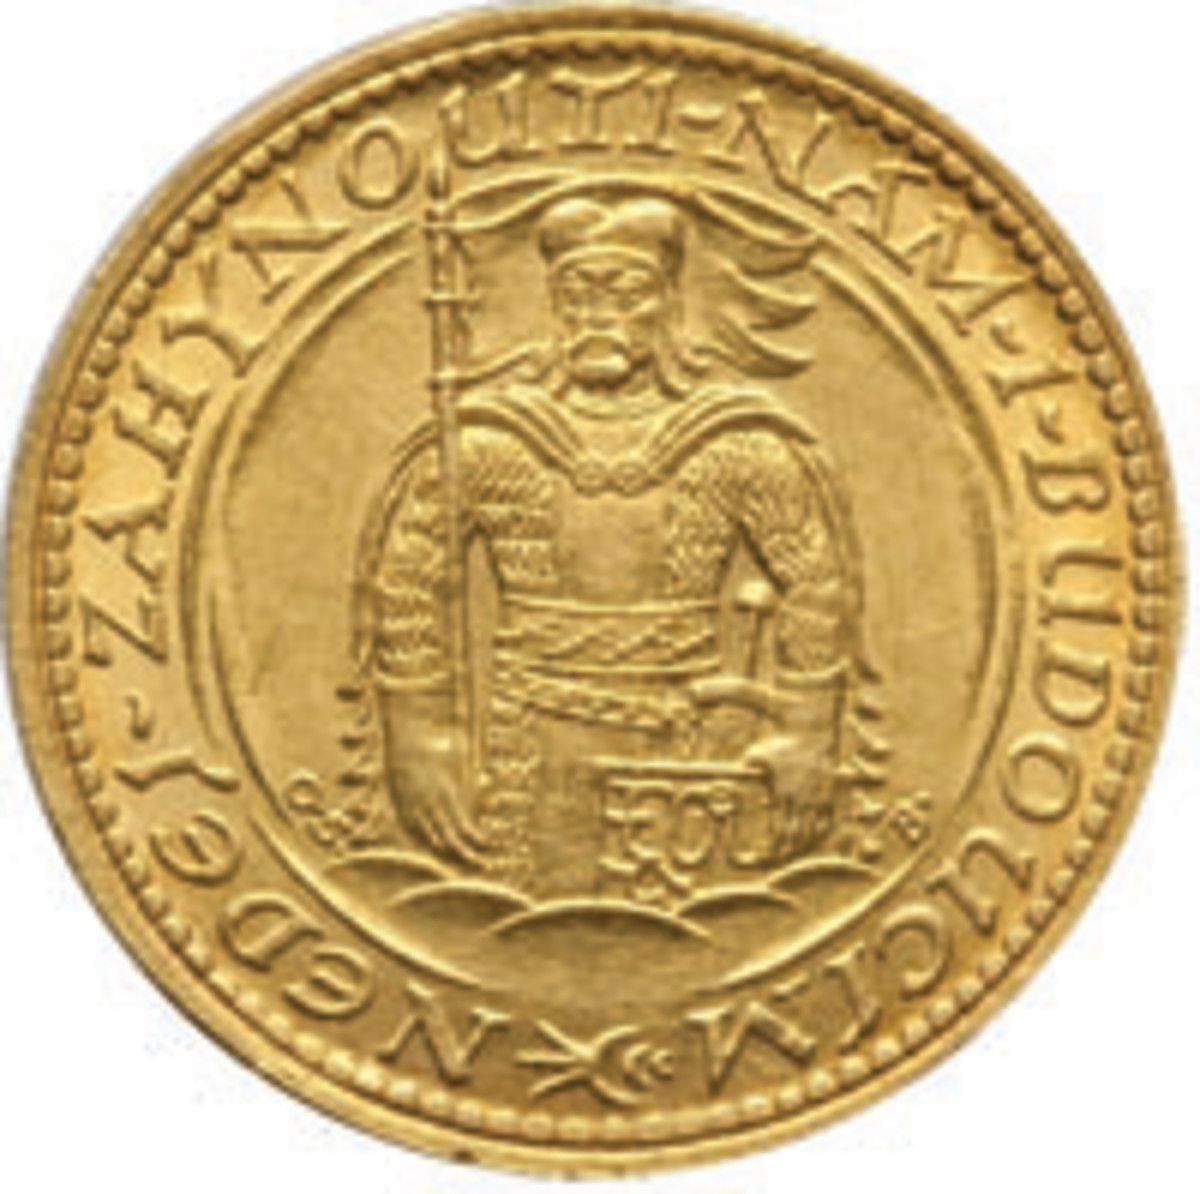 Wenceslas, Duke of Bohemia, fronts on the reverse of the first golden dukát struck by Czechoslovakia at the Kremnica Mint in 1923 (KM-8). (Image courtesy www.ha.com)